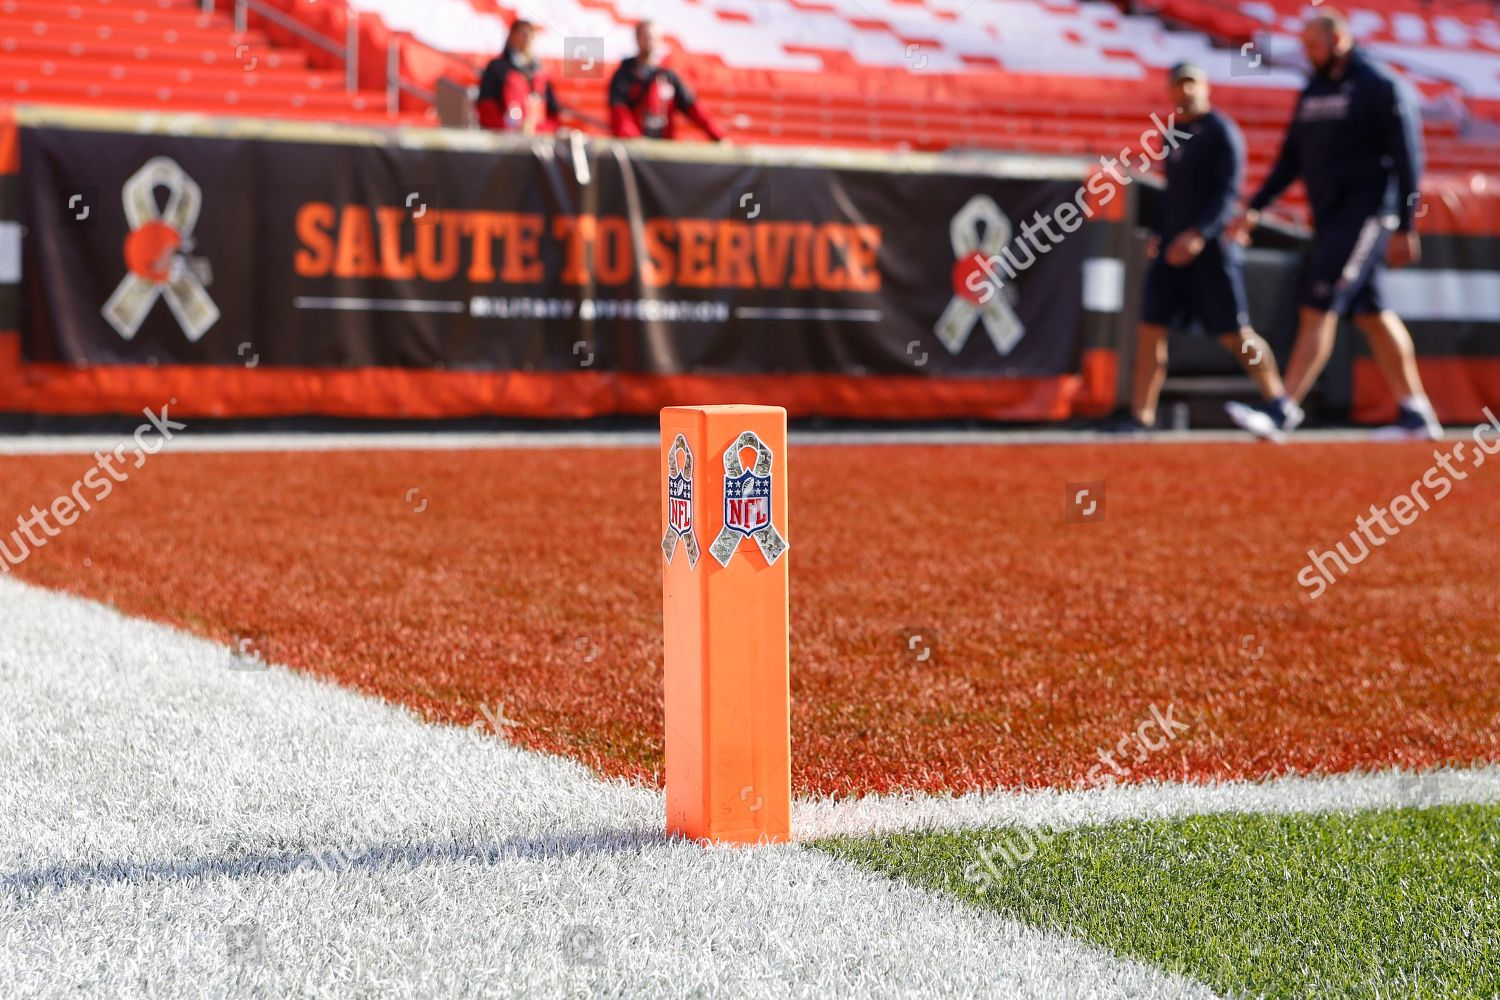 promo code cfd0b ce796 Salute Service ribbon displayed on End Zone Editorial Stock ...